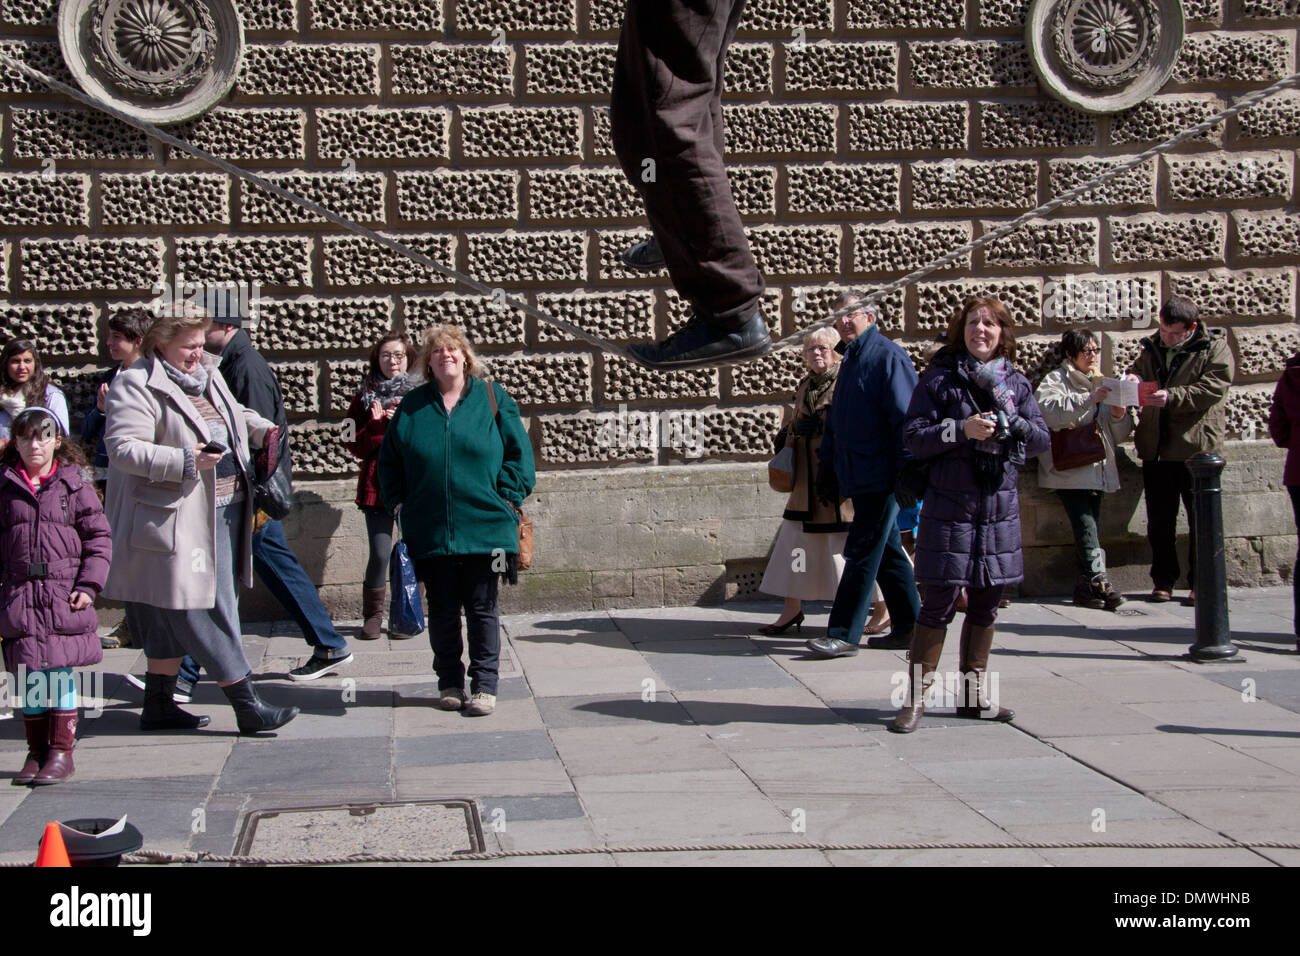 A tightrope walker and pedestrians in Stall Street, Bath - Stock Image